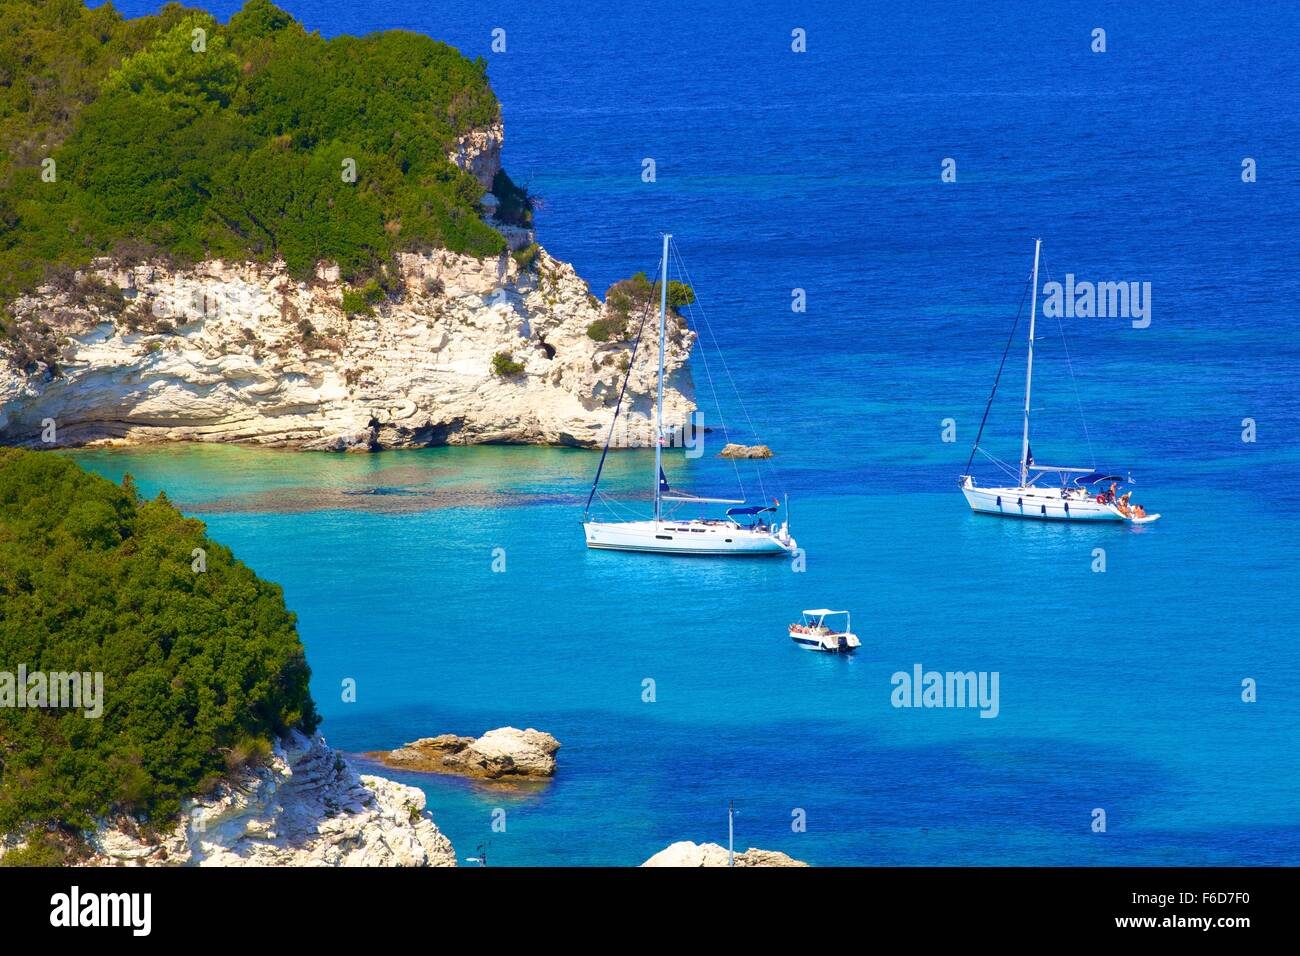 Elevated View of Voutoumi Bay, Antipaxos, The Ionian Islands, Greek Islands, Greece, Europe - Stock Image